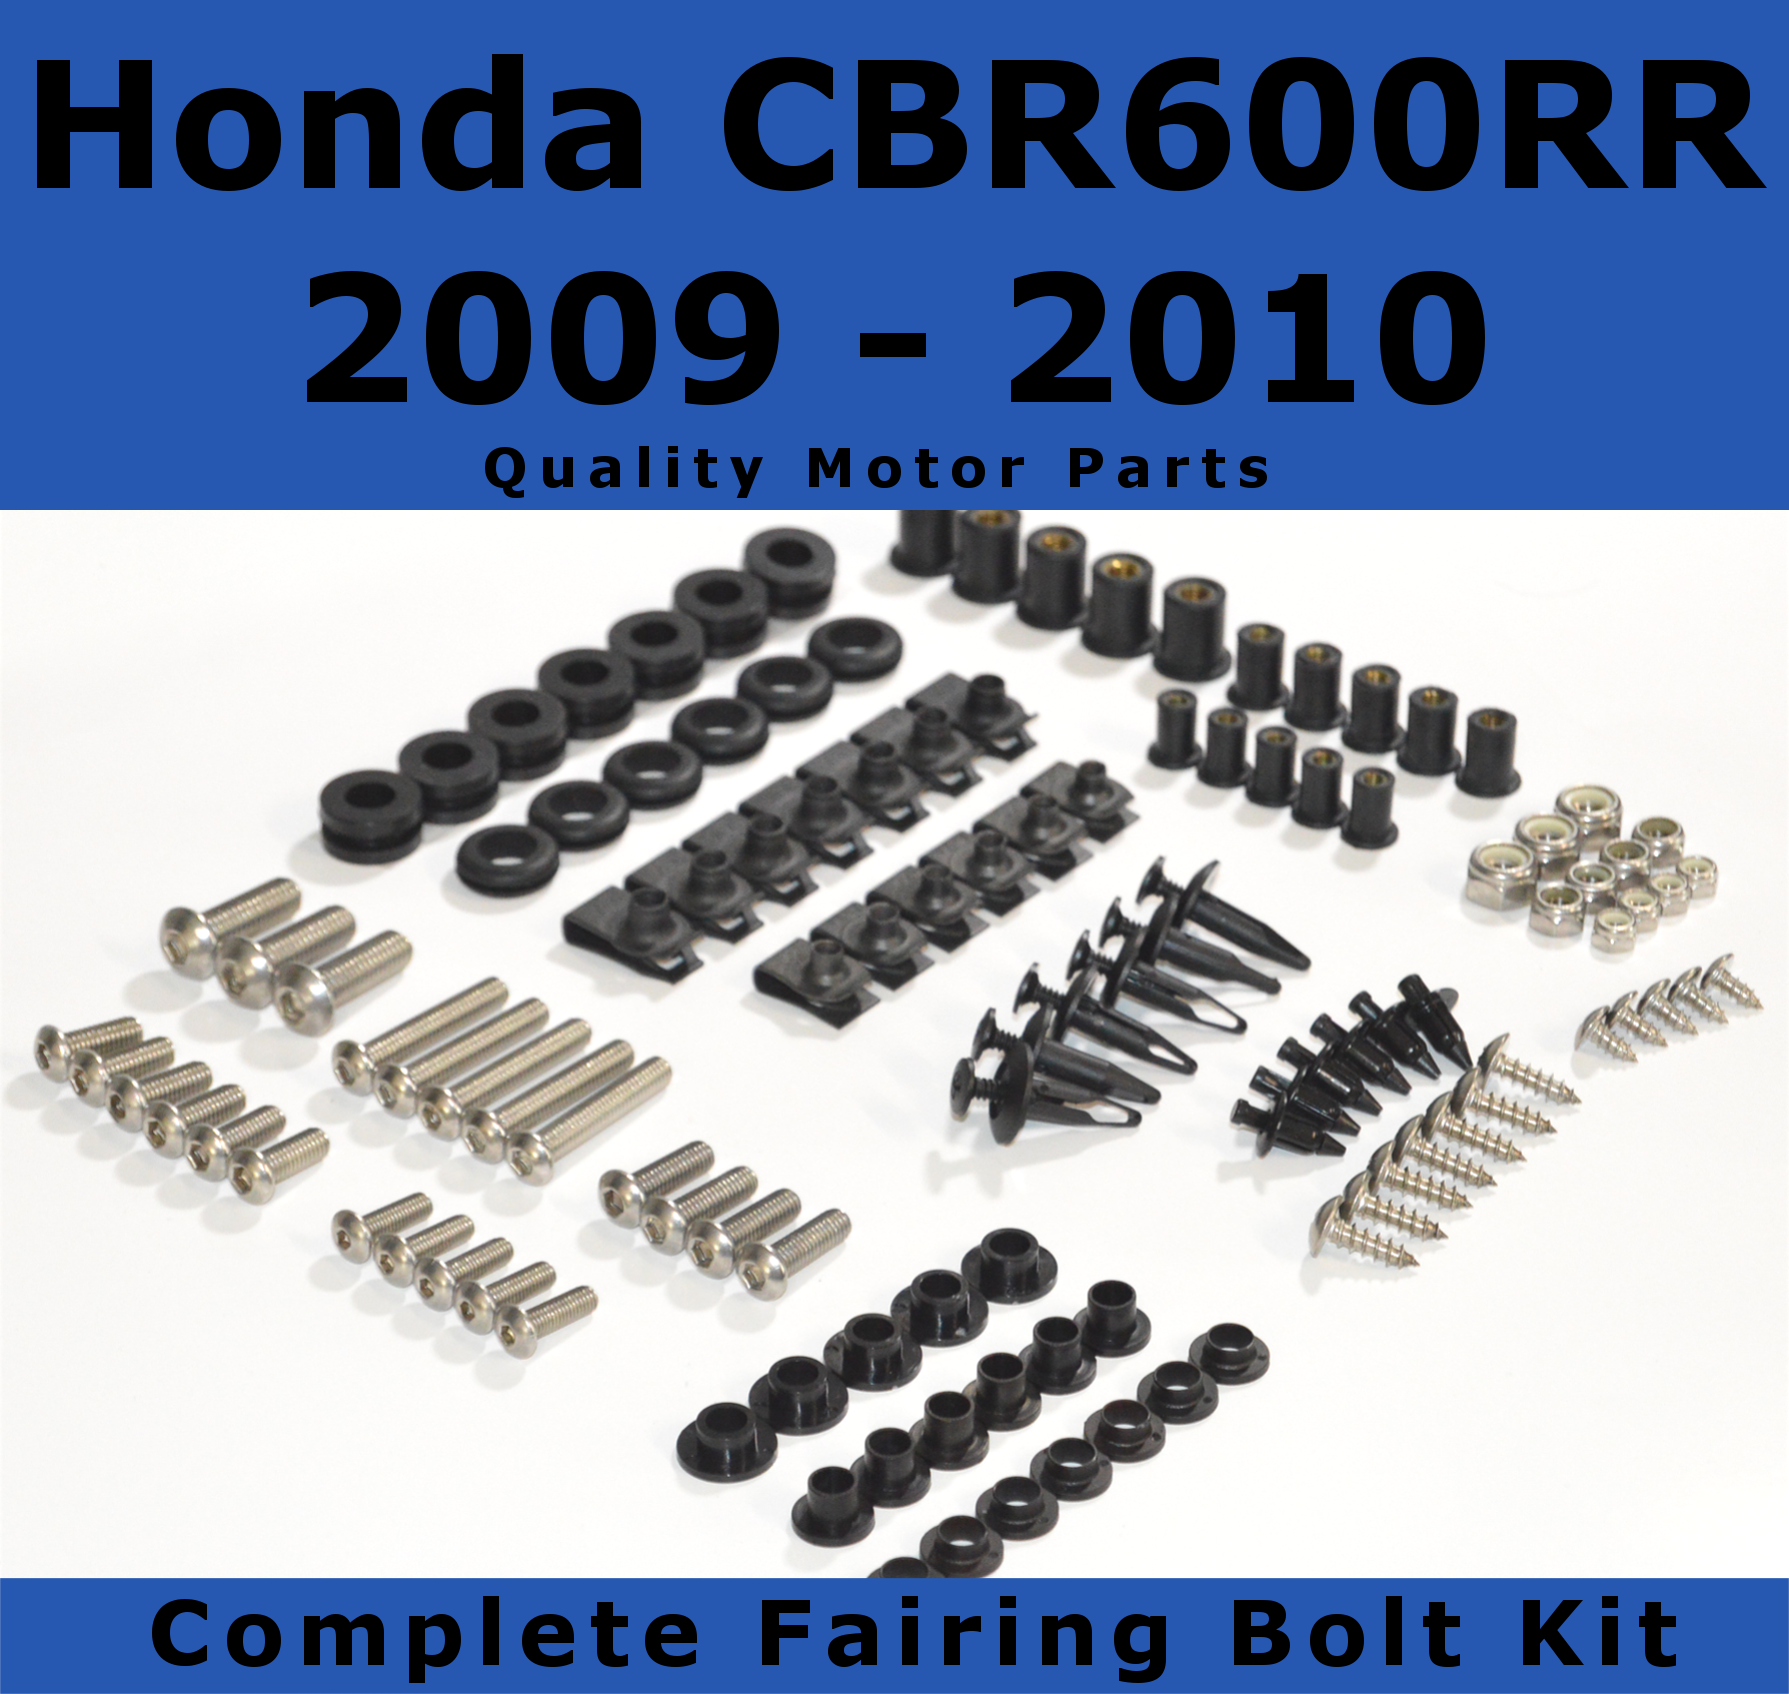 Complete Fairing Bolt Kit for Honda CBR600RR 2009 - 2010 body screws fasteners